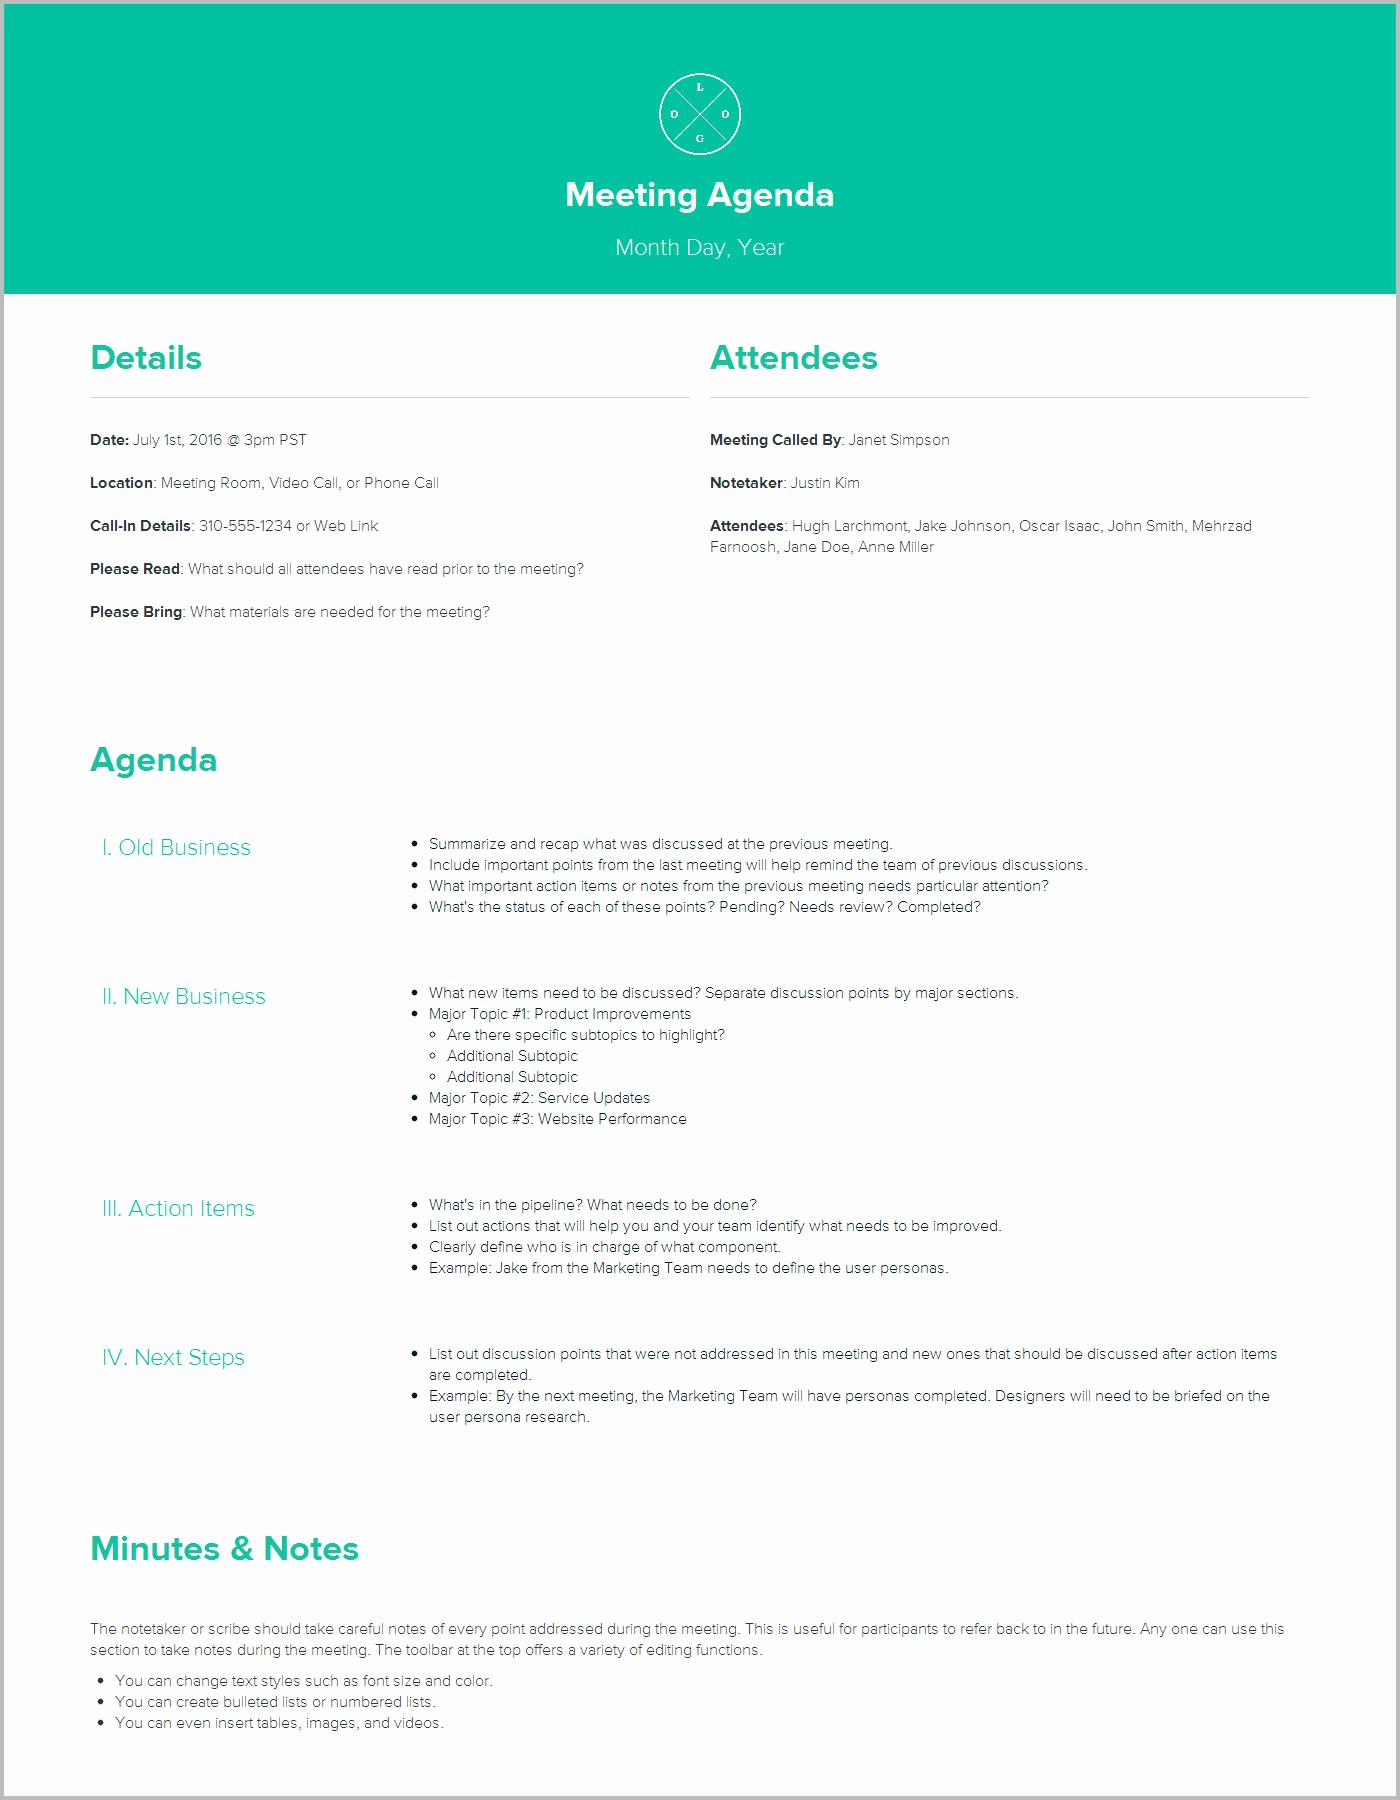 Sample Minutes for A Meeting New Meeting Agenda Template by Xtensio It S Free